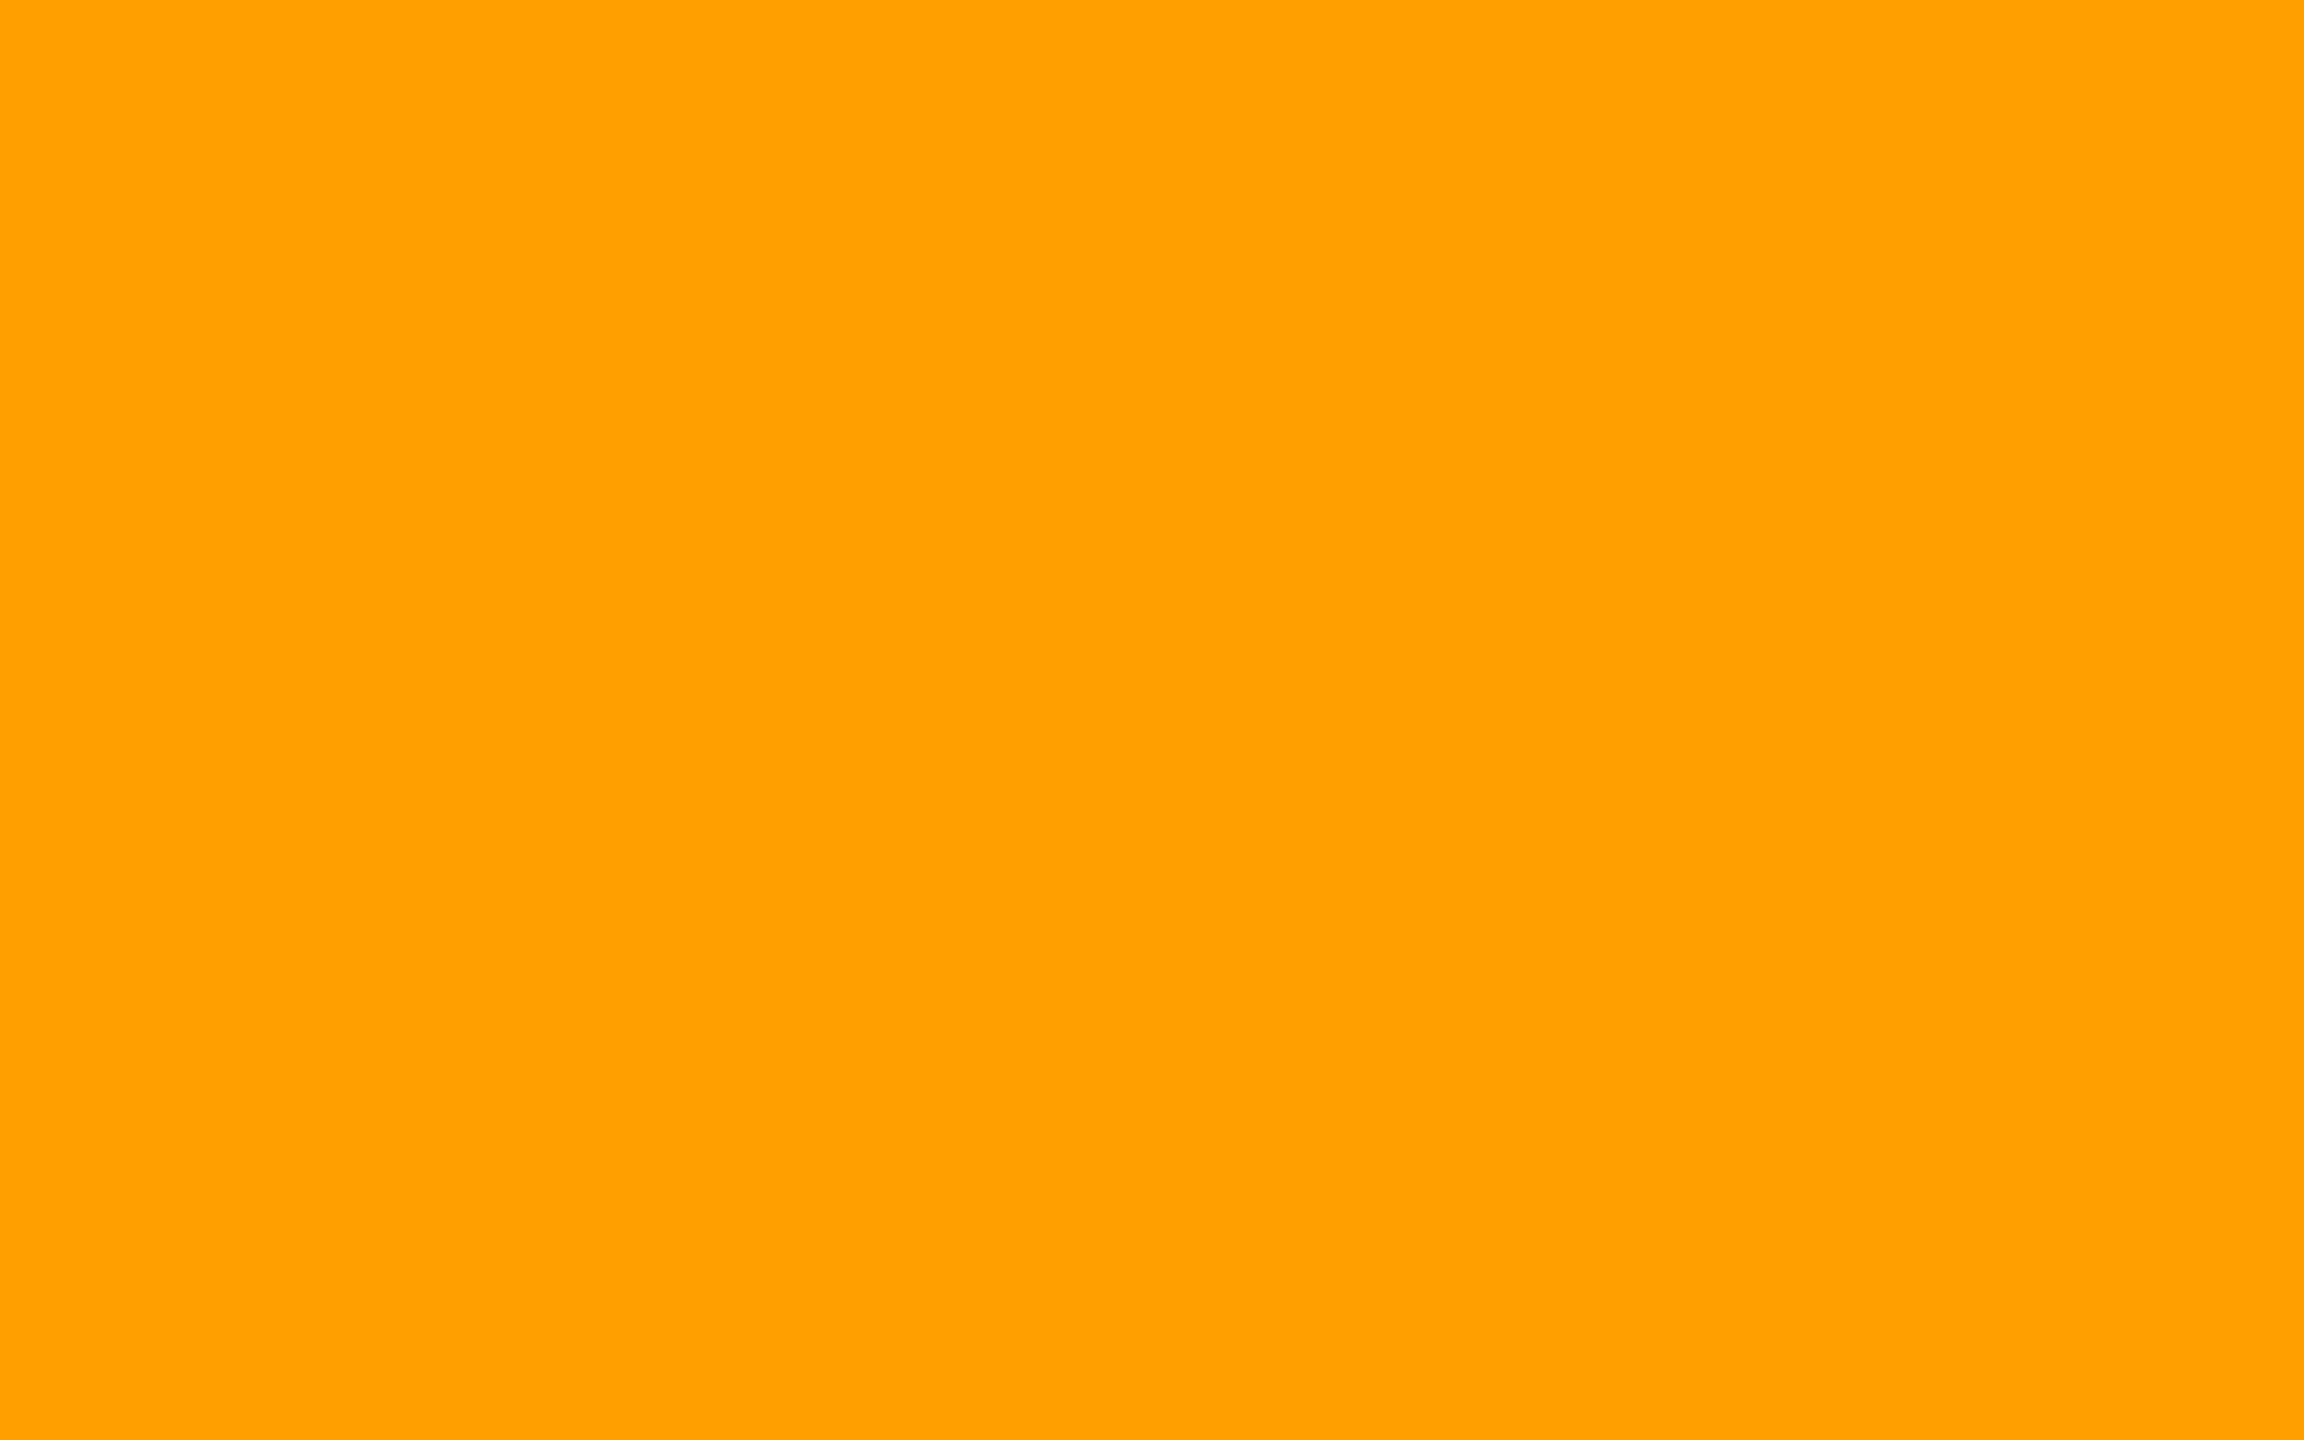 2304x1440 Orange Peel Solid Color Background